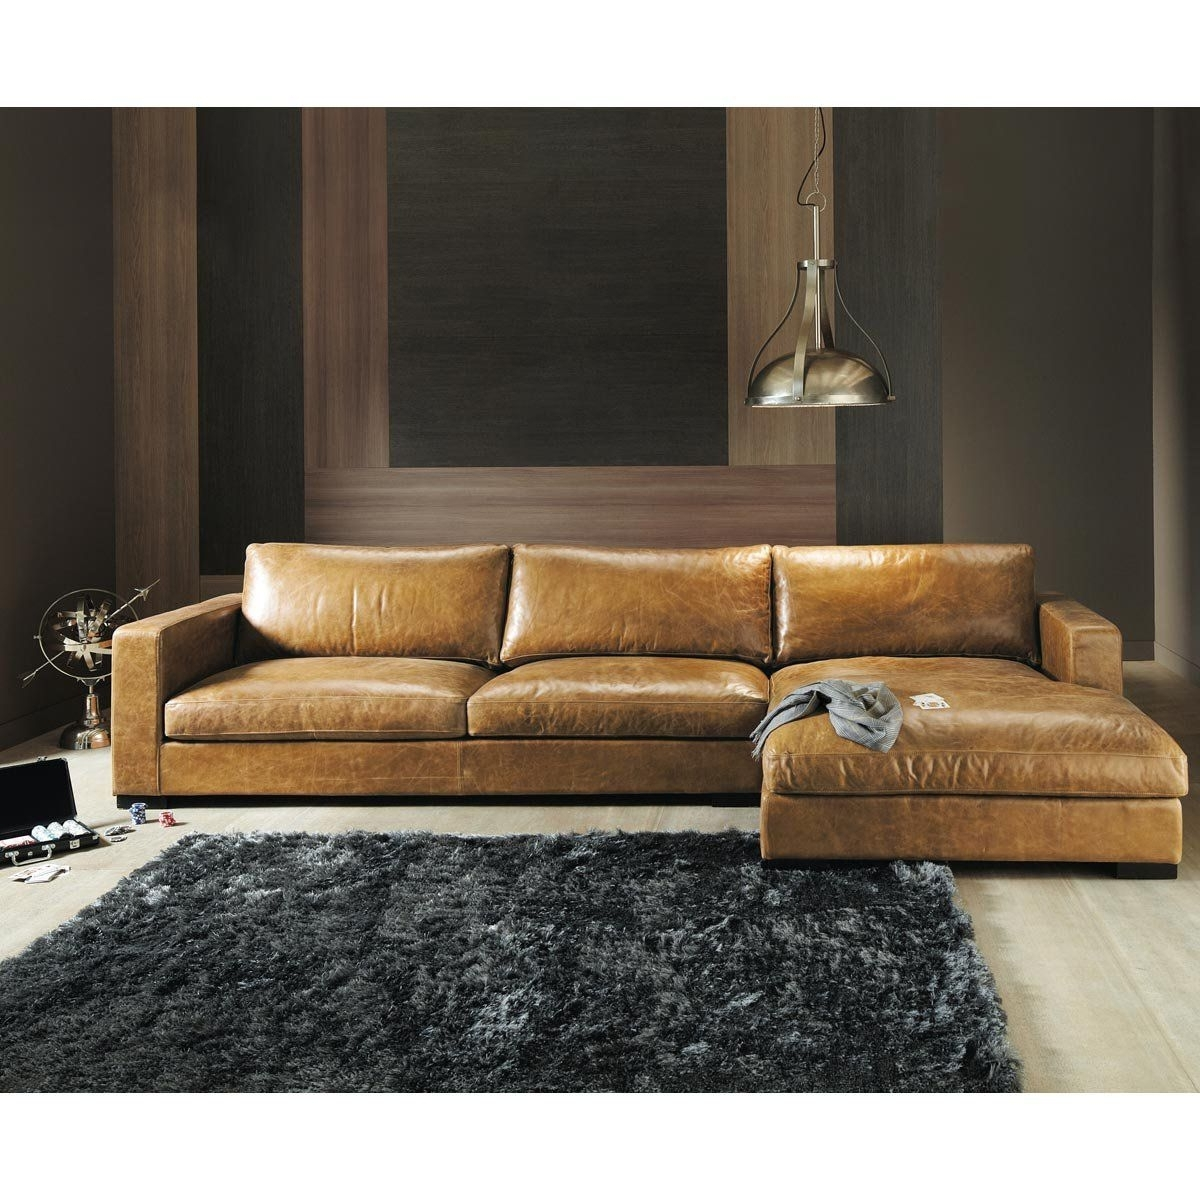 Camel Colored Sectional Sofas For Most Recent 5 Seater Vintage Leather Corner Sofa, Camel (View 9 of 20)